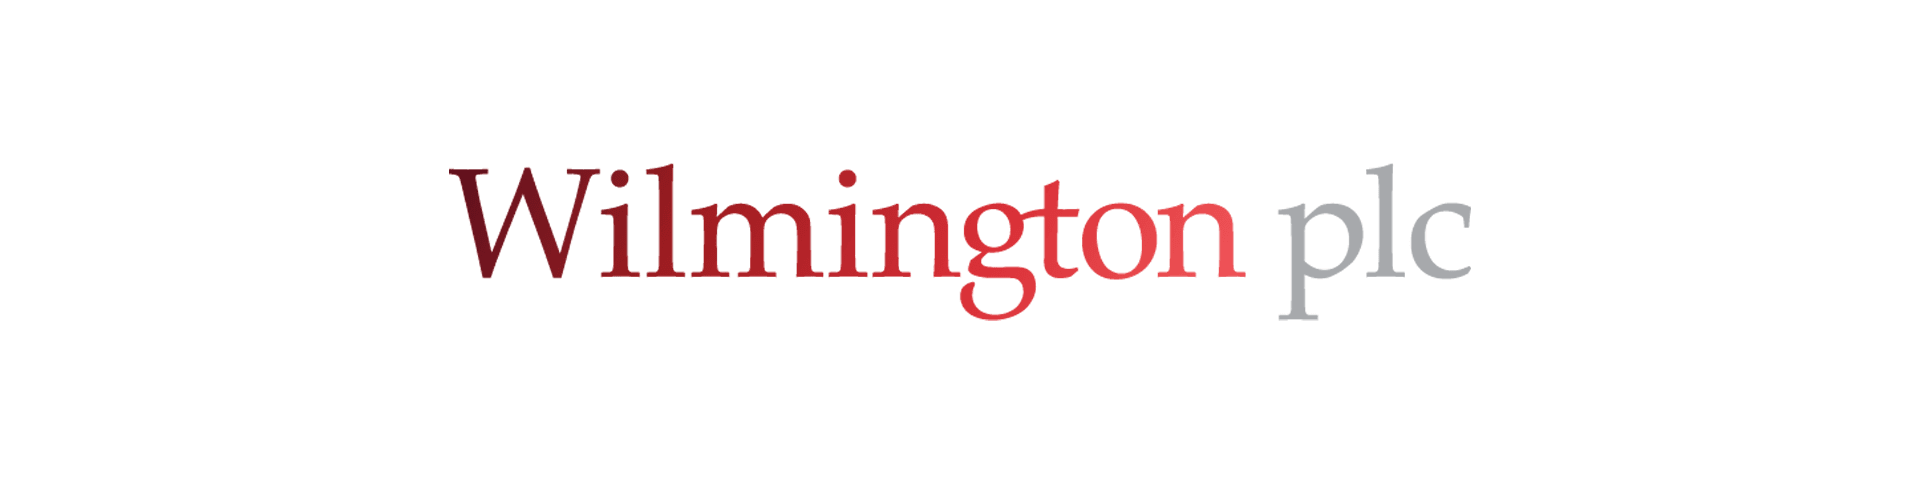 Header WILMINGTON PLC